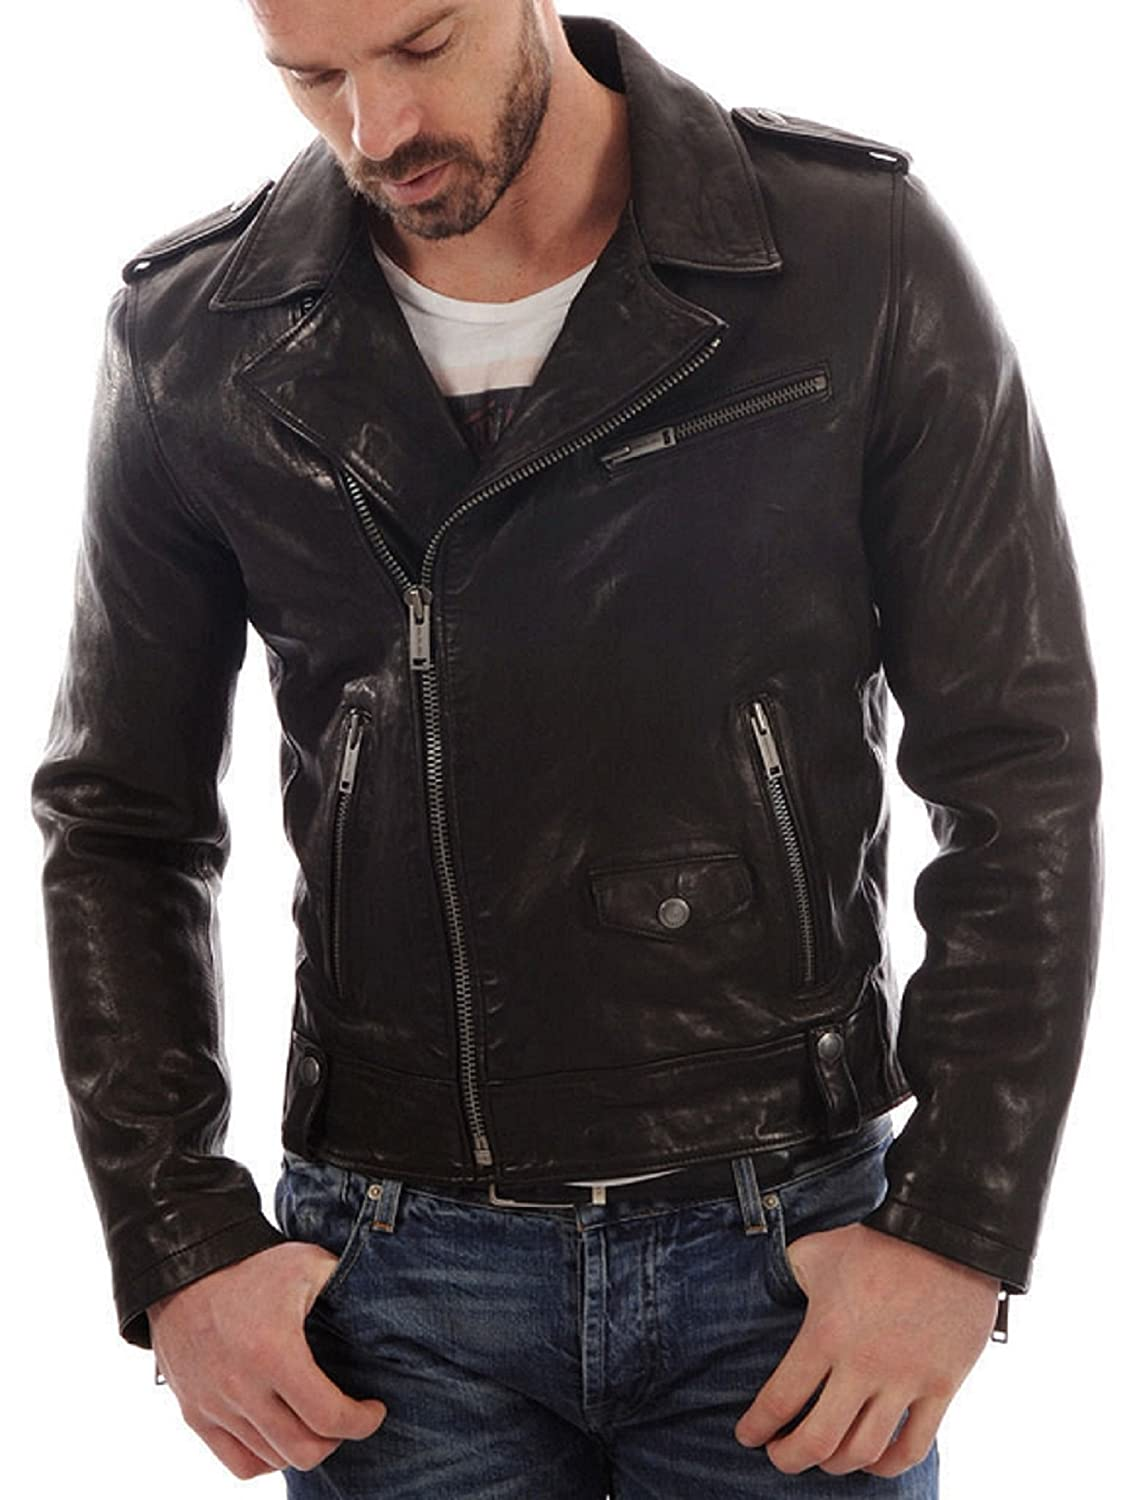 Leather Lifestyle OUTERWEAR メンズ B0797CXQ84 X-Large